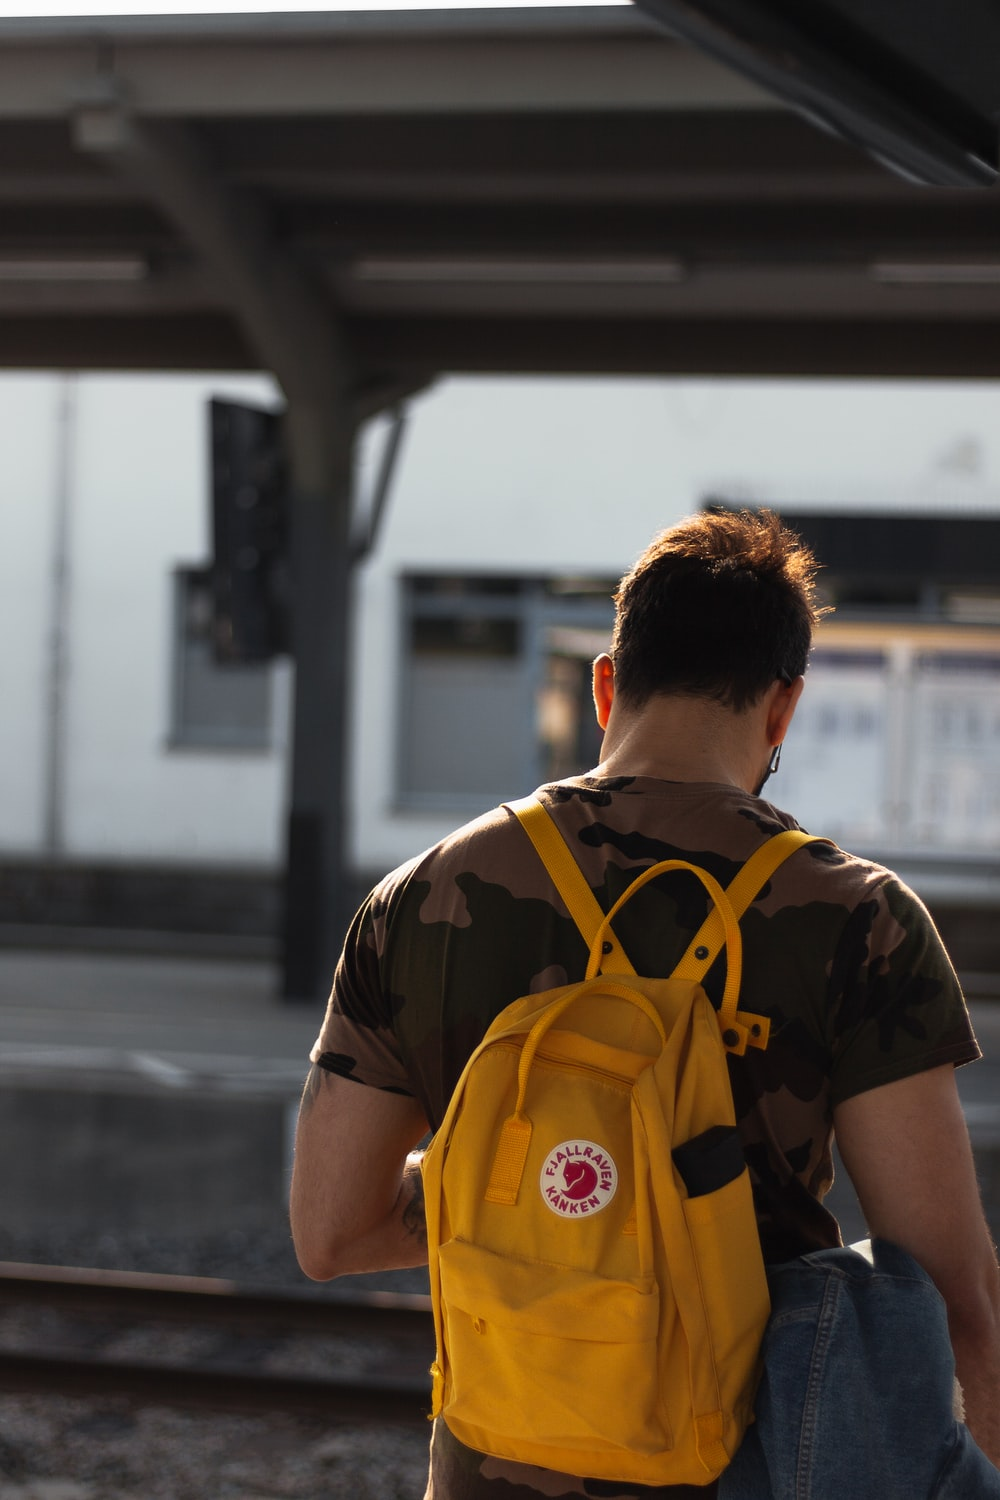 man carrying yellow backpack in train station